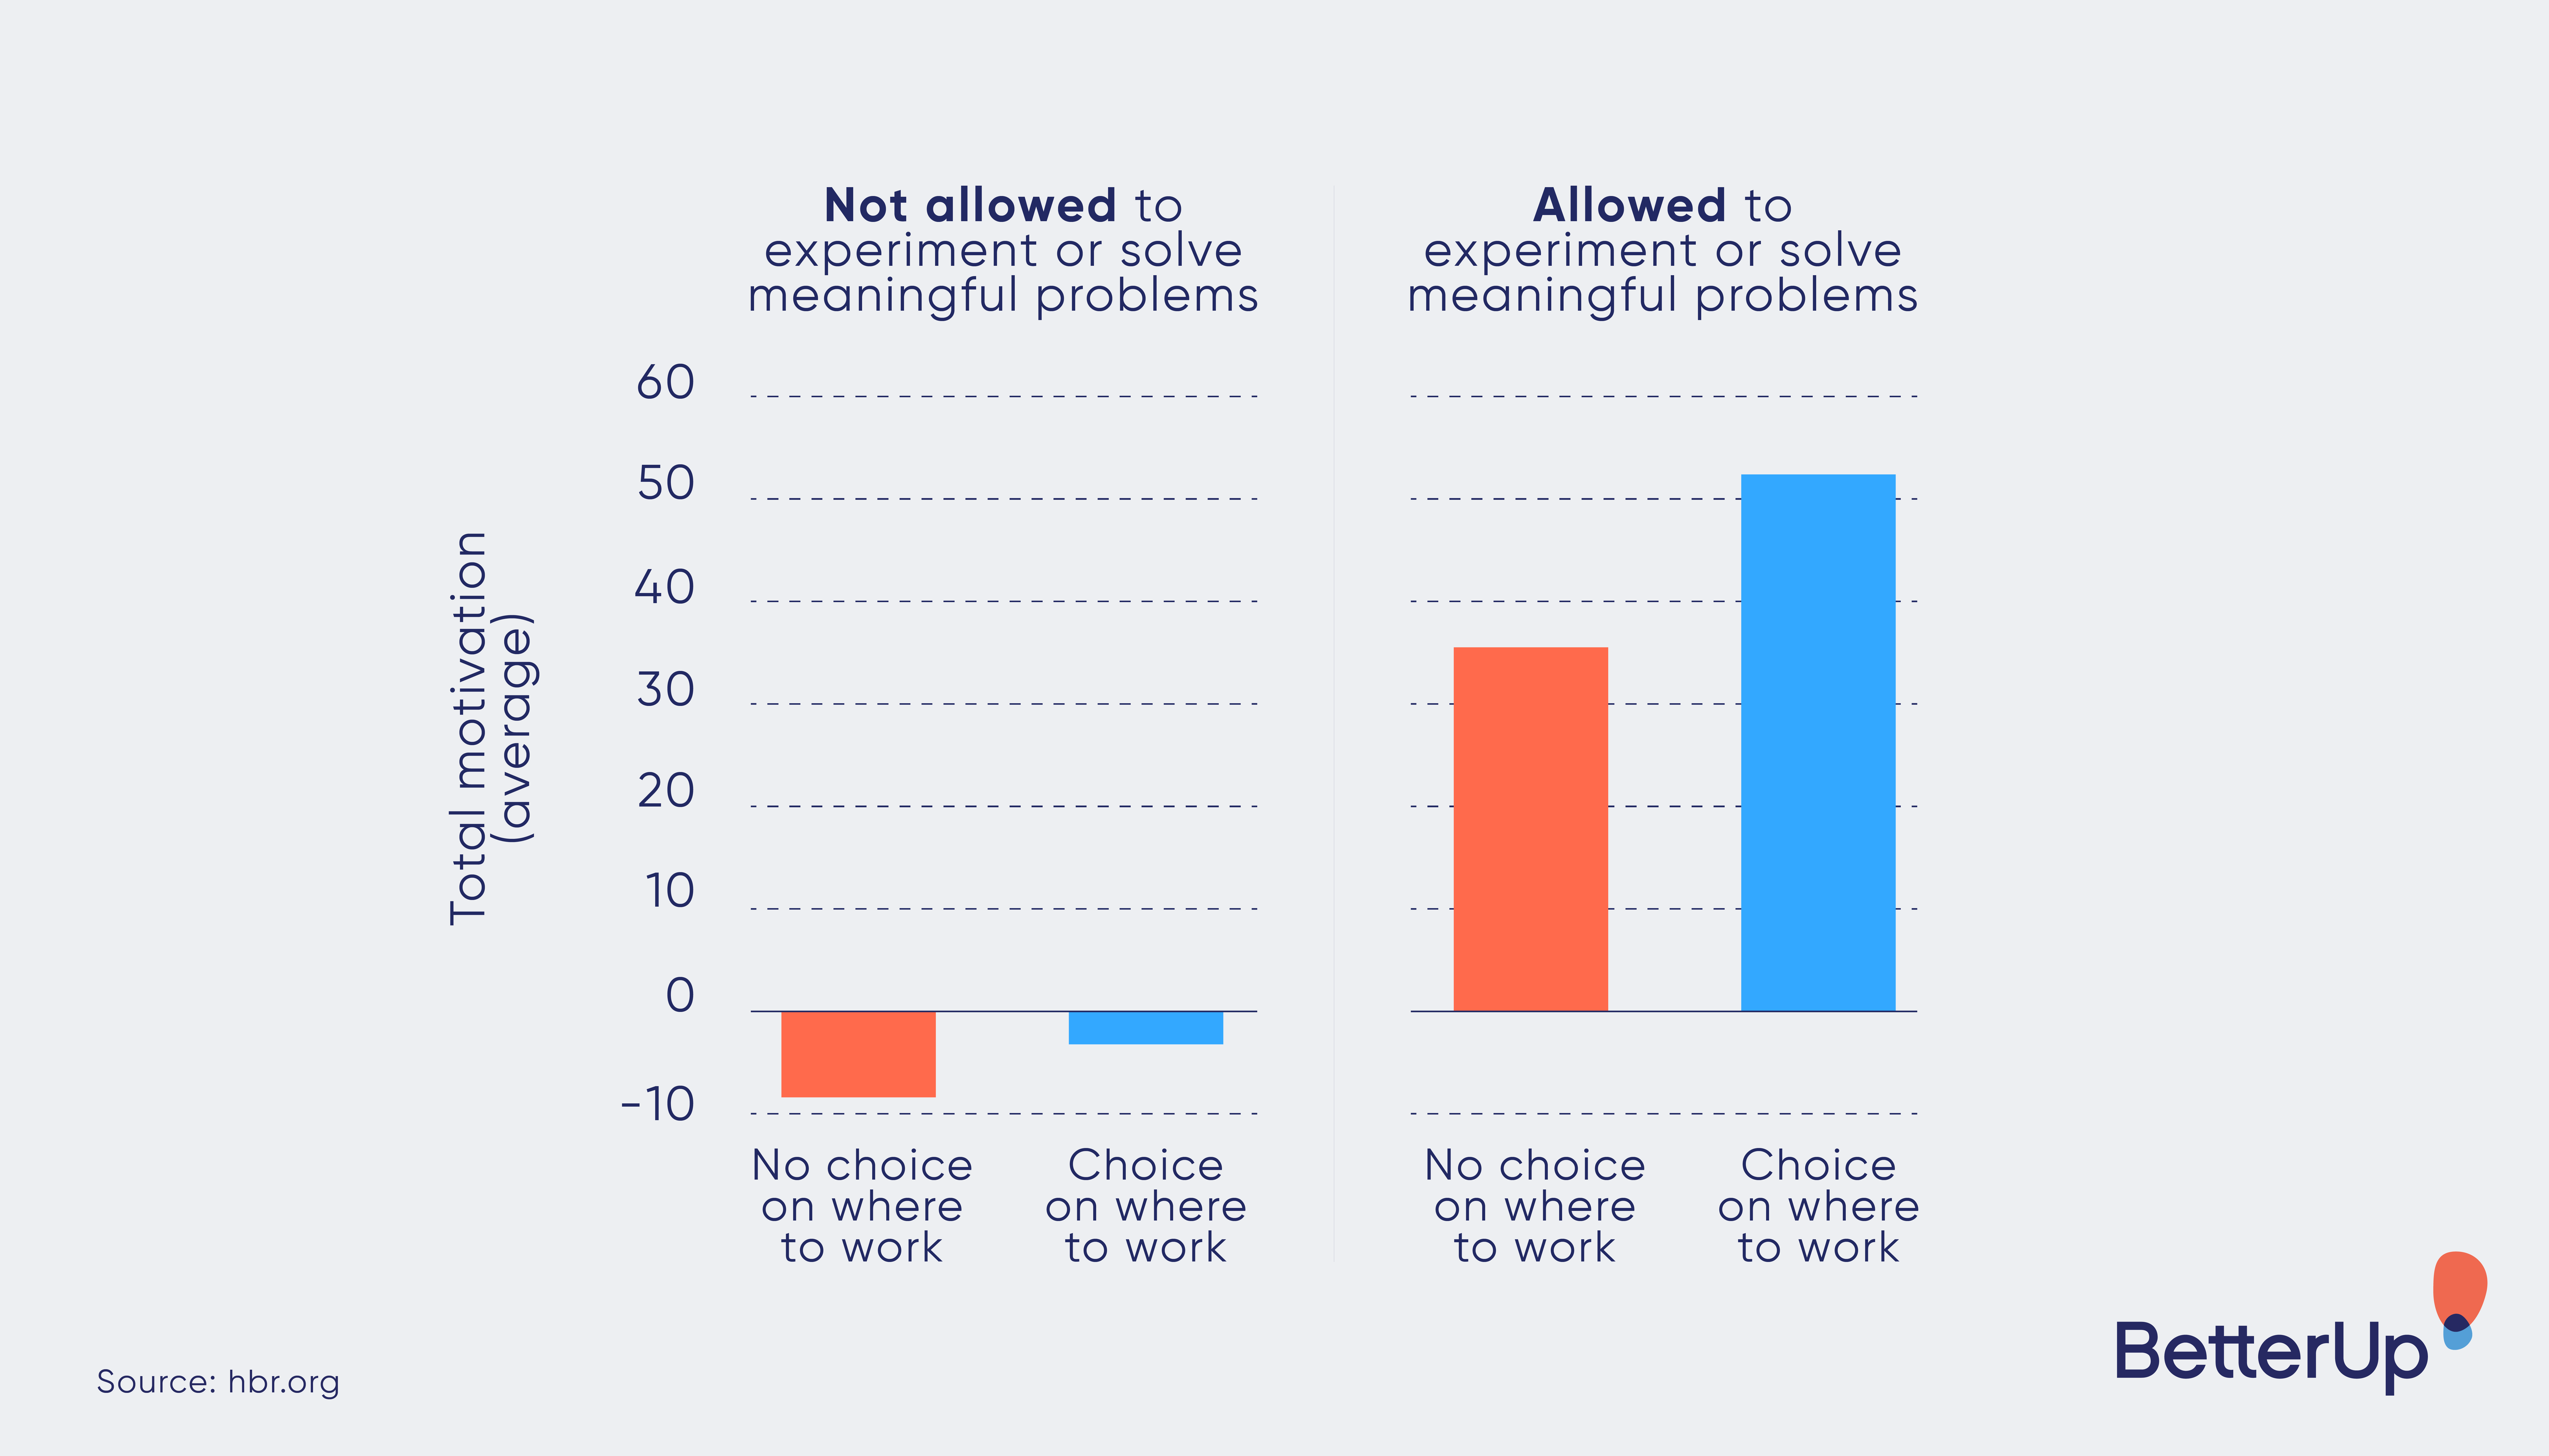 statistics on a bar graph about a study on the effects of remote work